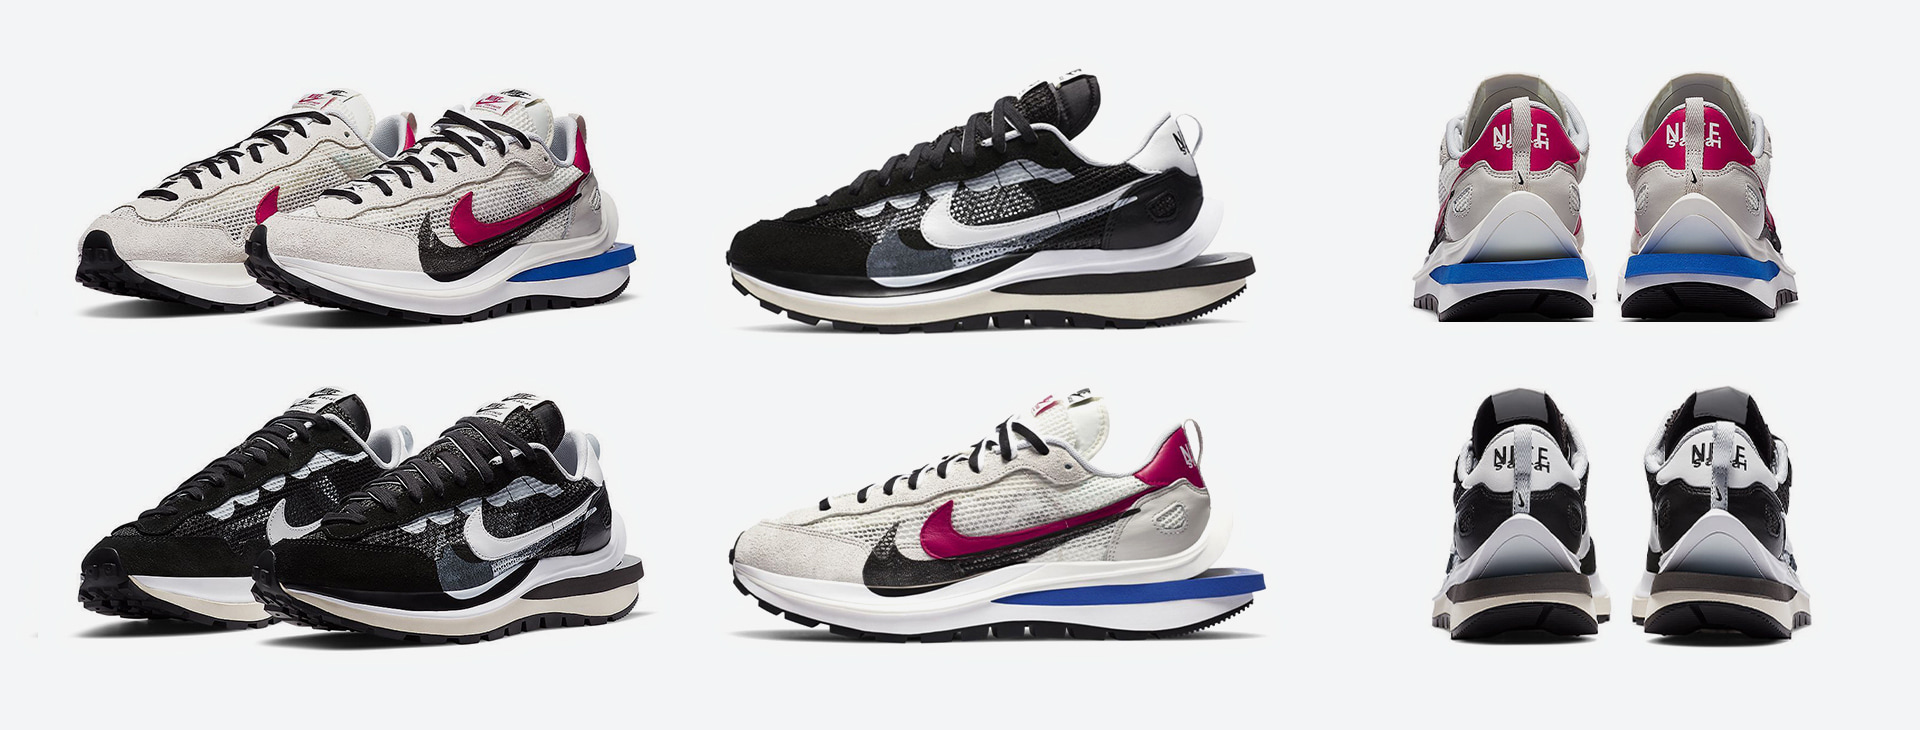 Official shots of the new Nike x Sacai Vaporwaffleare out now: the suede sneakers are releasing next month.